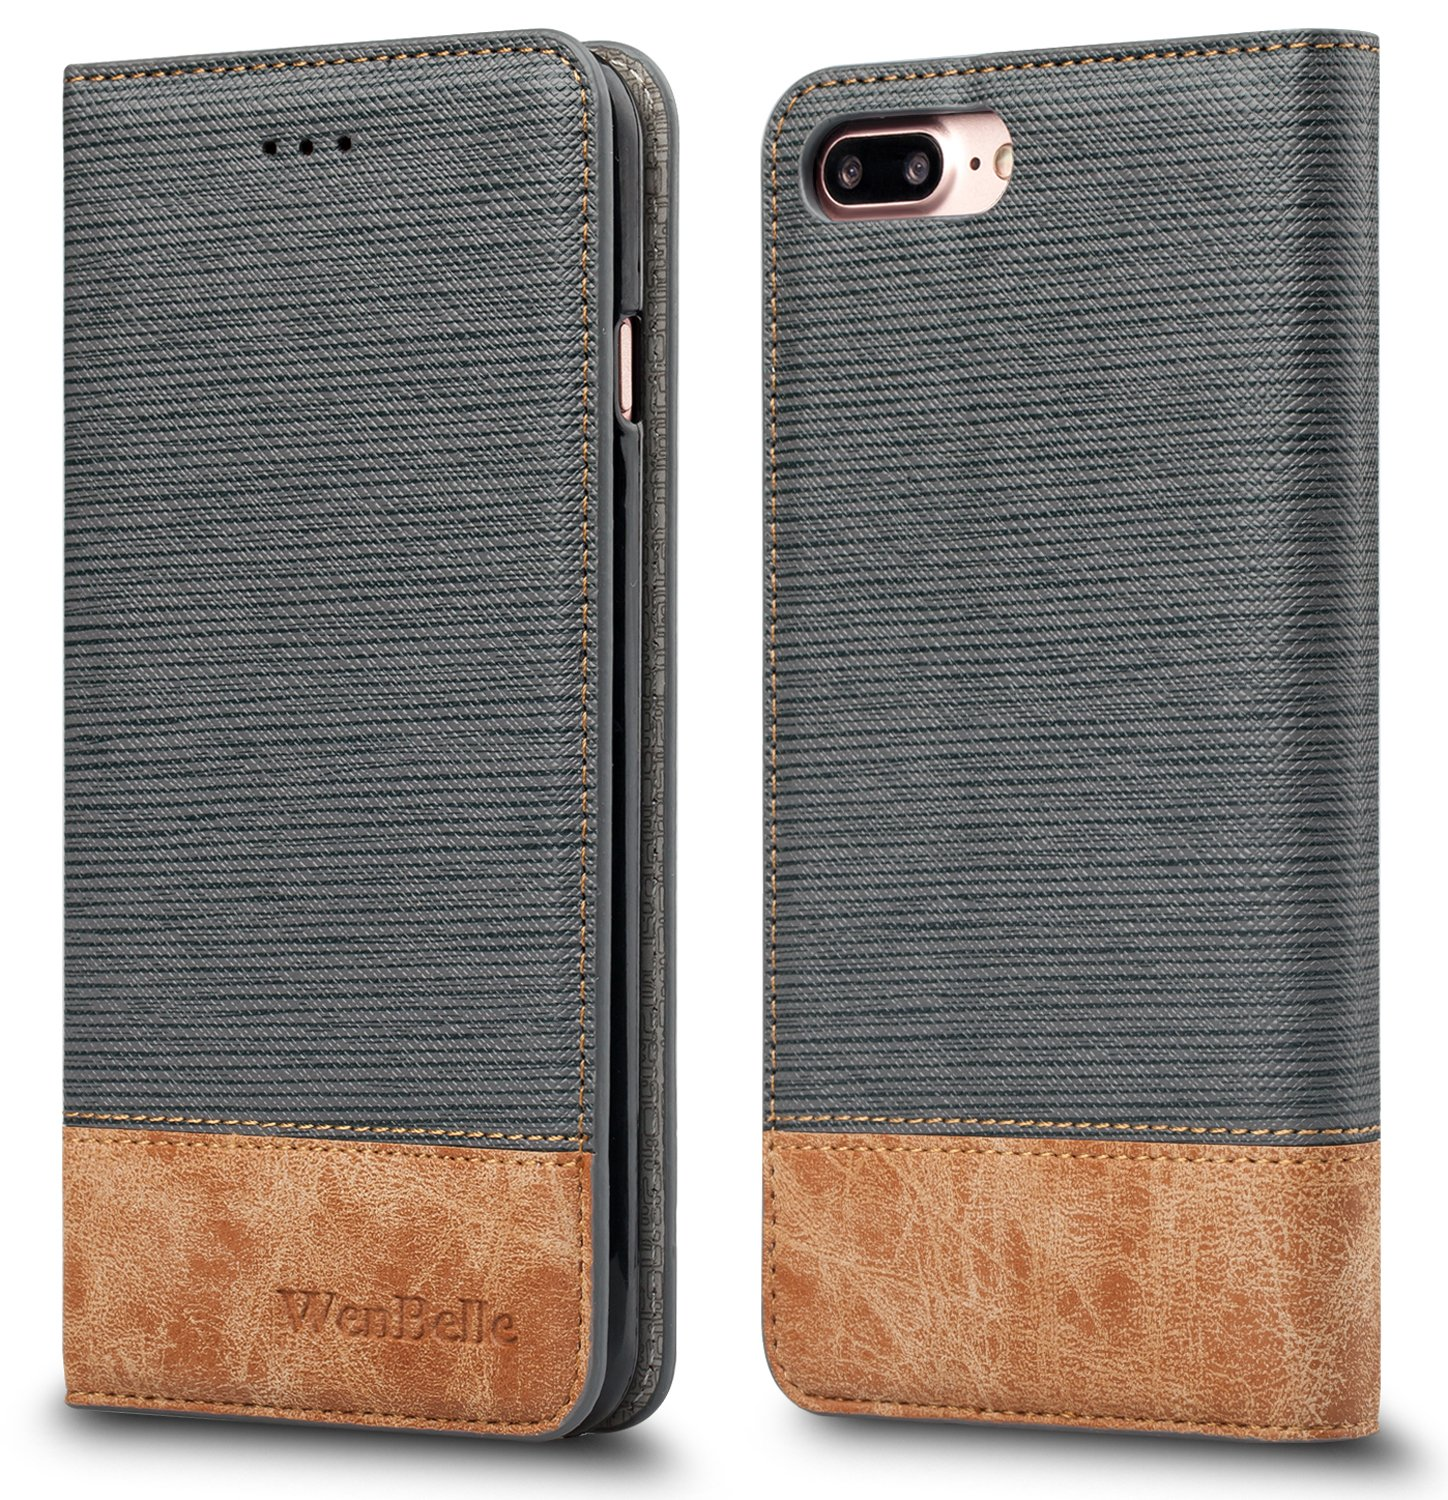 leather case for an iphone 7 plus amazon comfor iphone 7 plus iphone 8 plus case,wenbelle [blazers series] stand